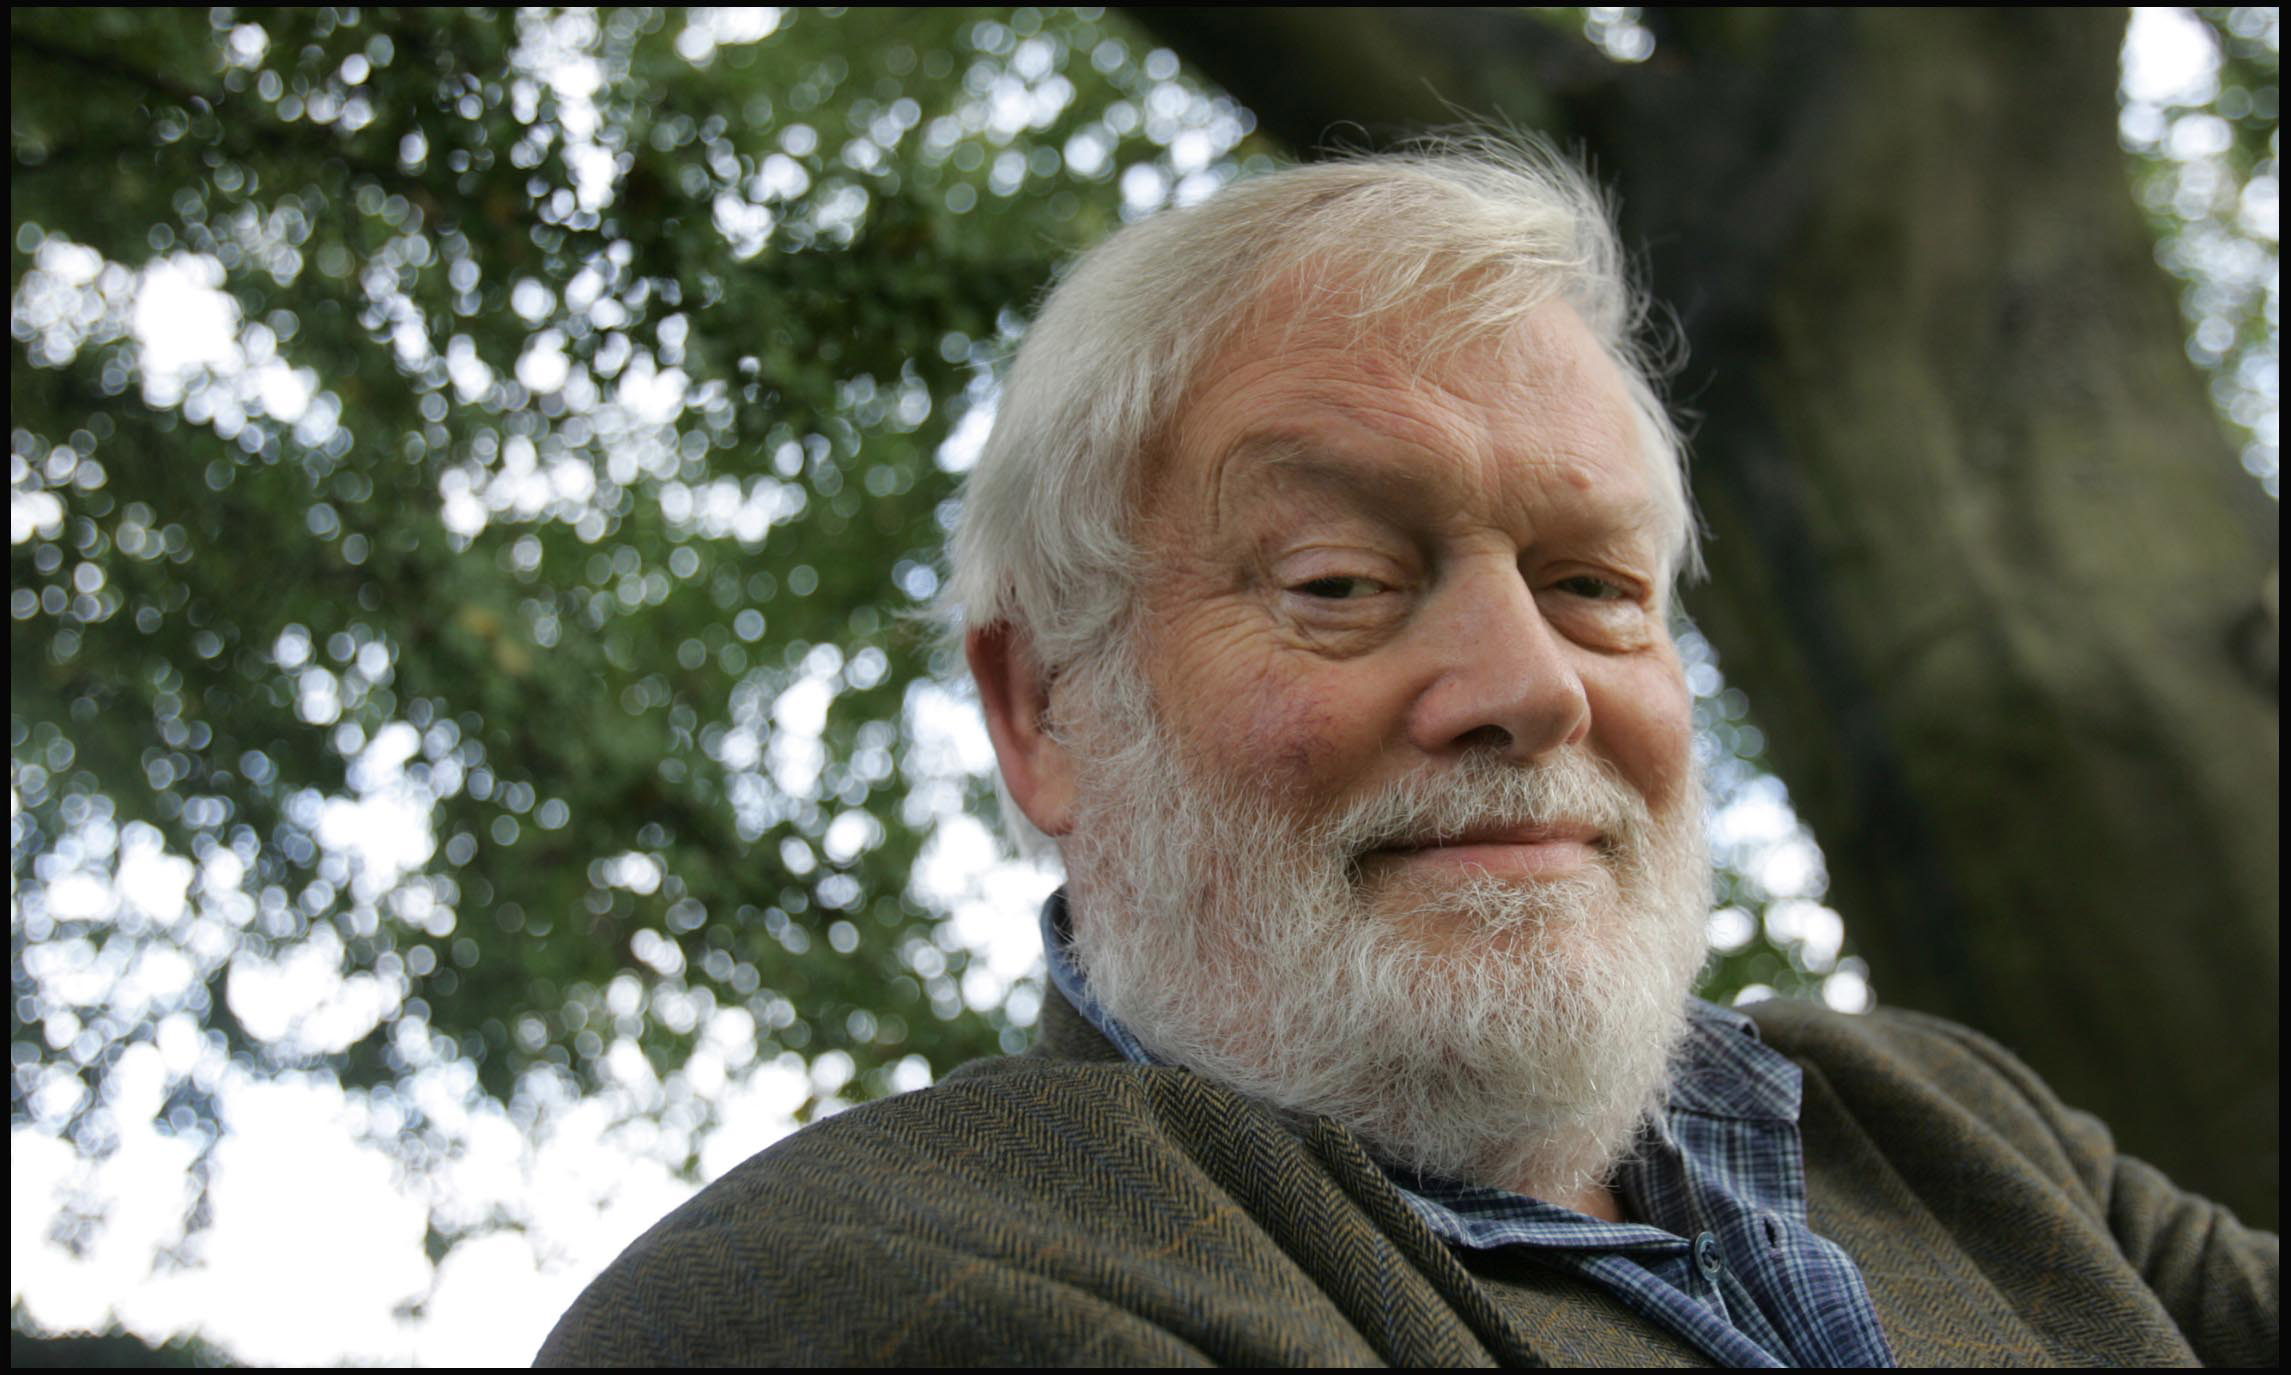 Michael Longley has been awarded the PEN Pinter Prize 2017